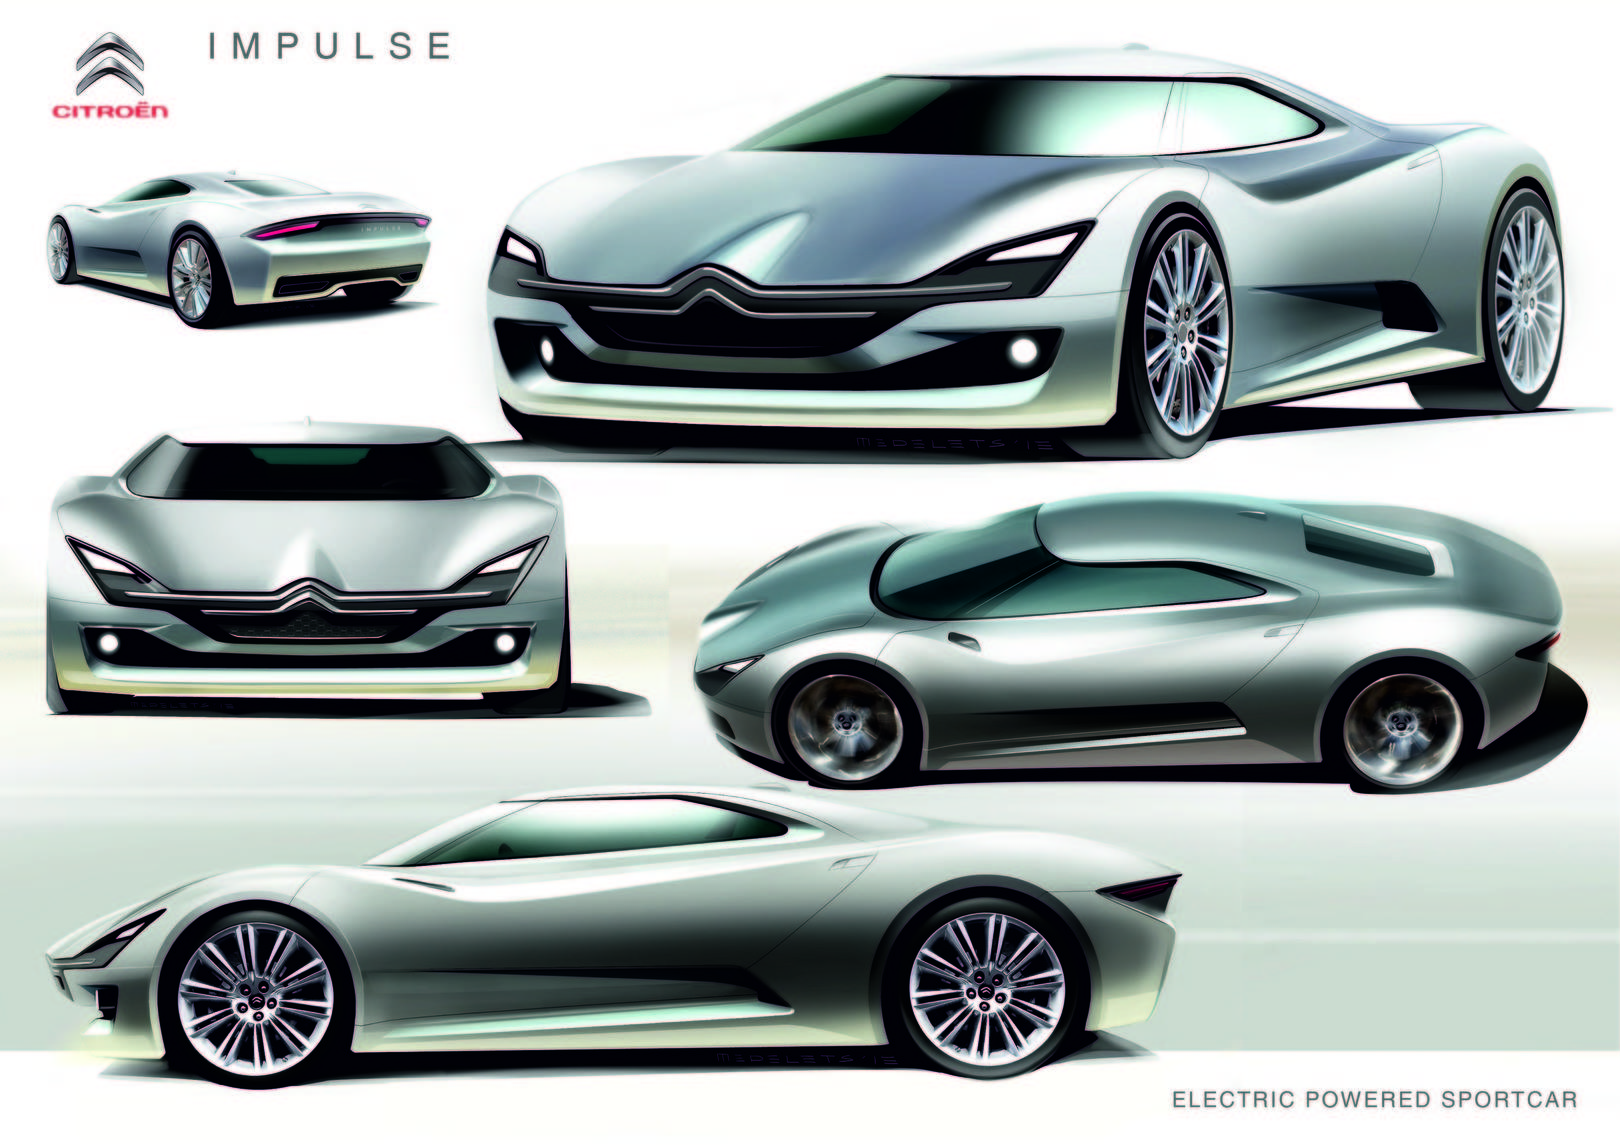 Citroen Impulse Design Project